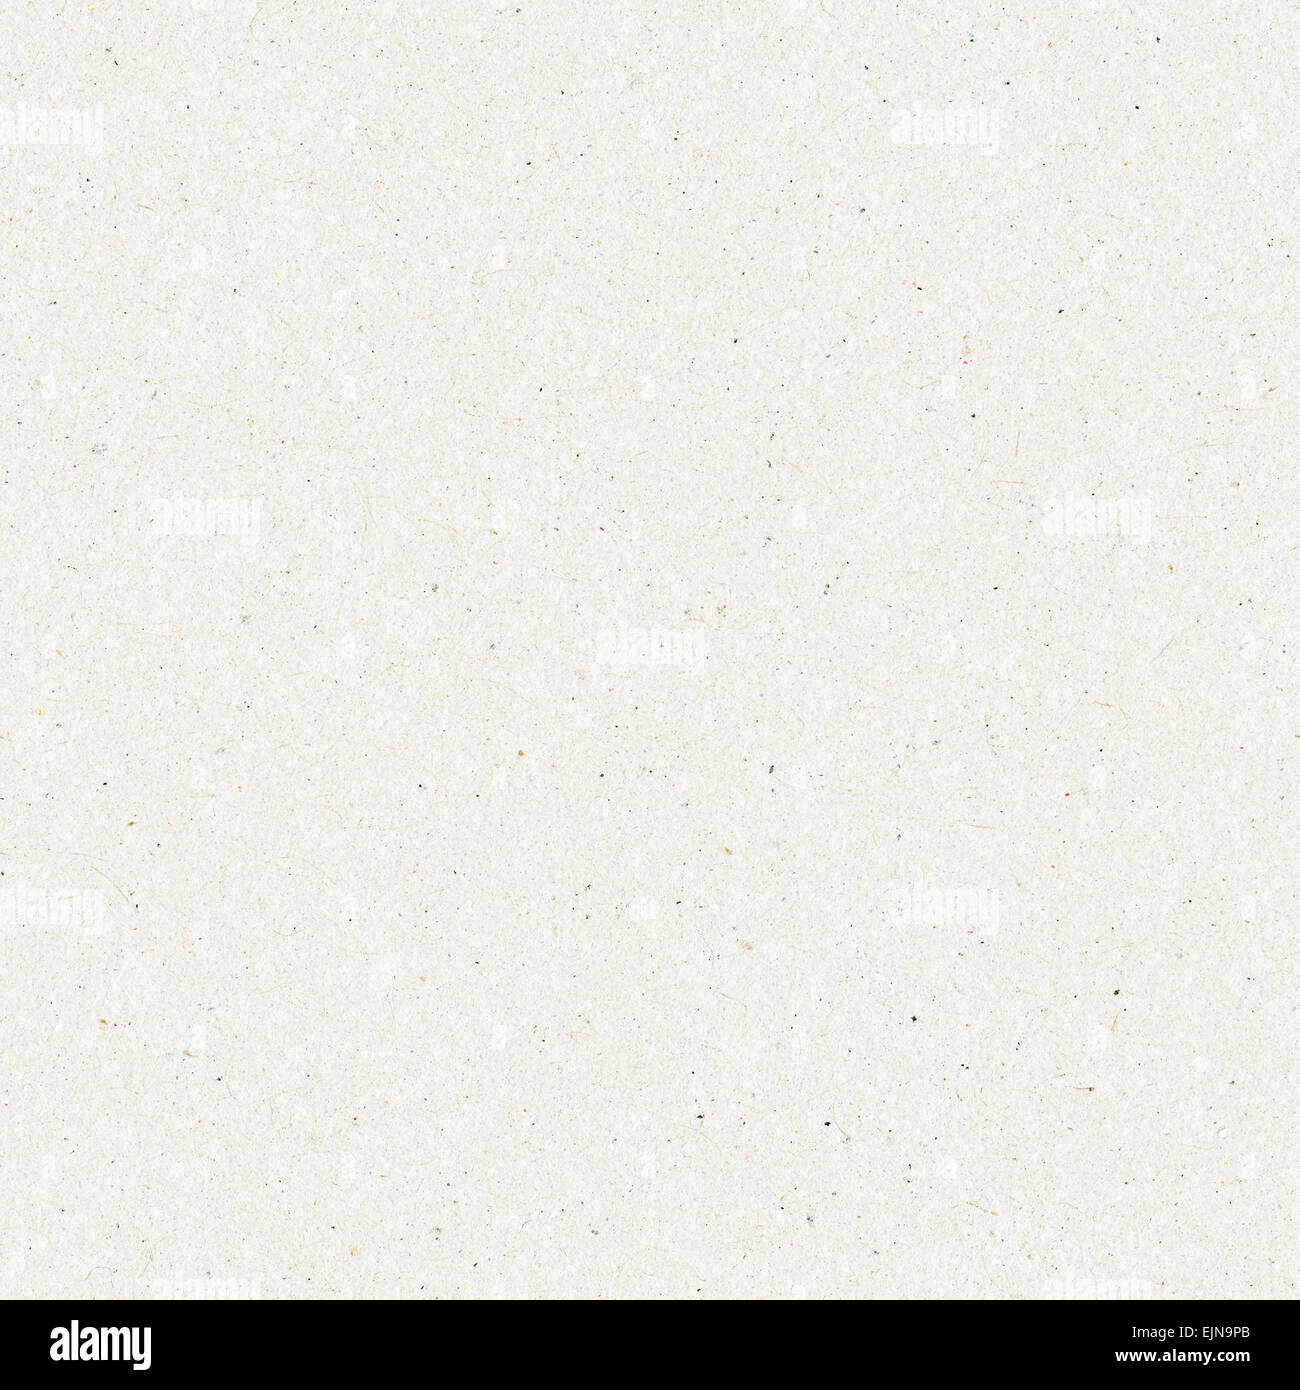 seamless paper texture, white cardboard background - Stock Image